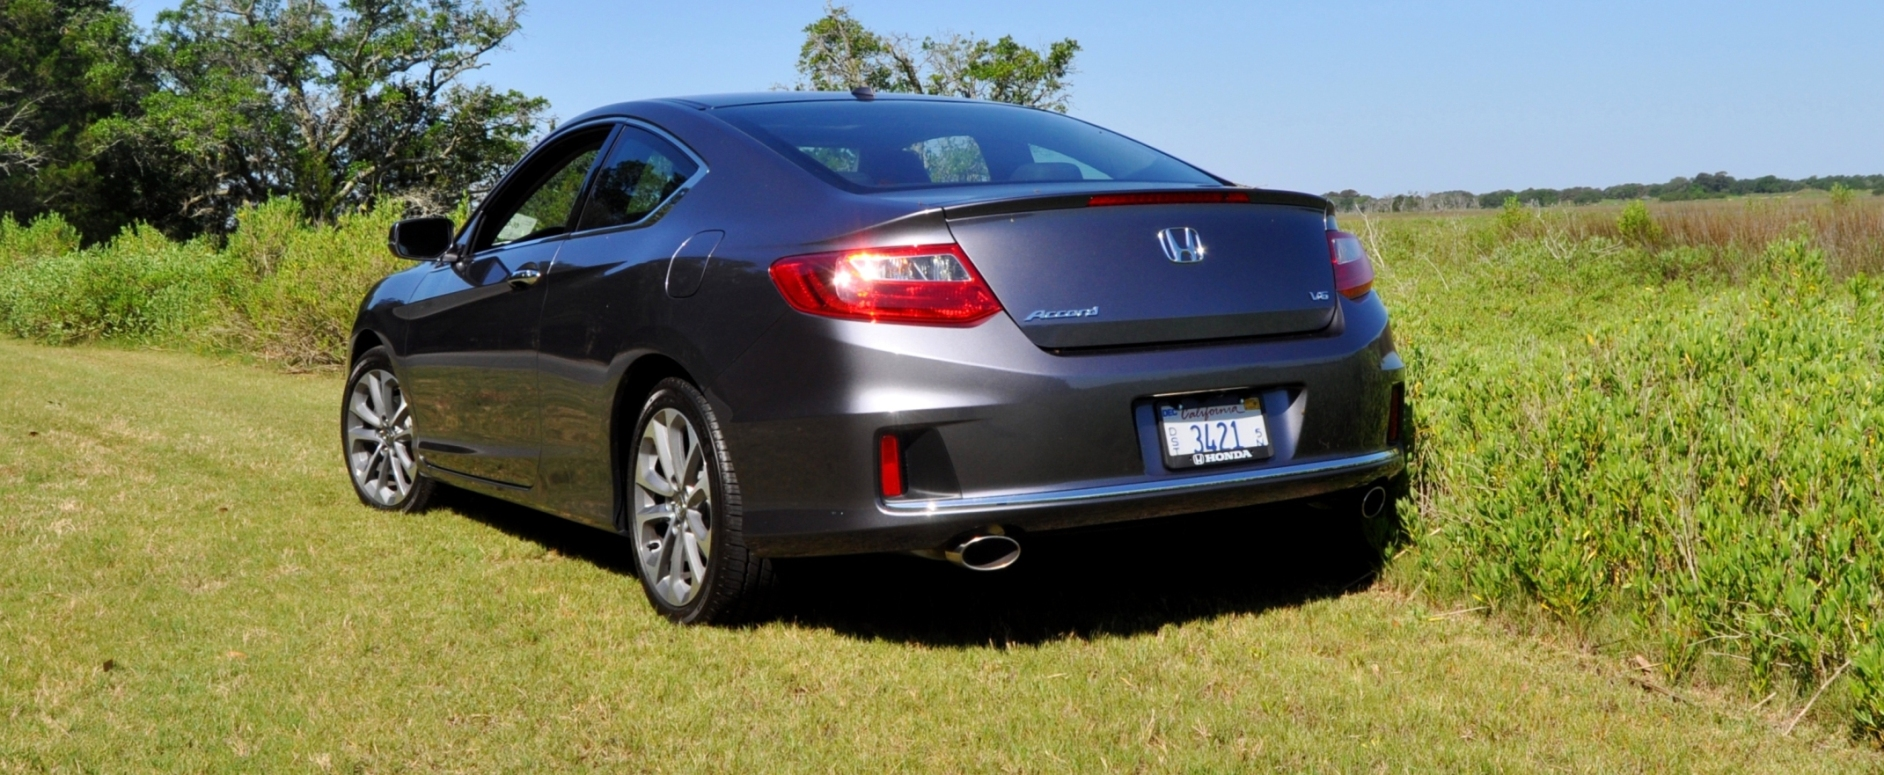 mega road test review 2014 honda accord coupe v6 ex l. Black Bedroom Furniture Sets. Home Design Ideas